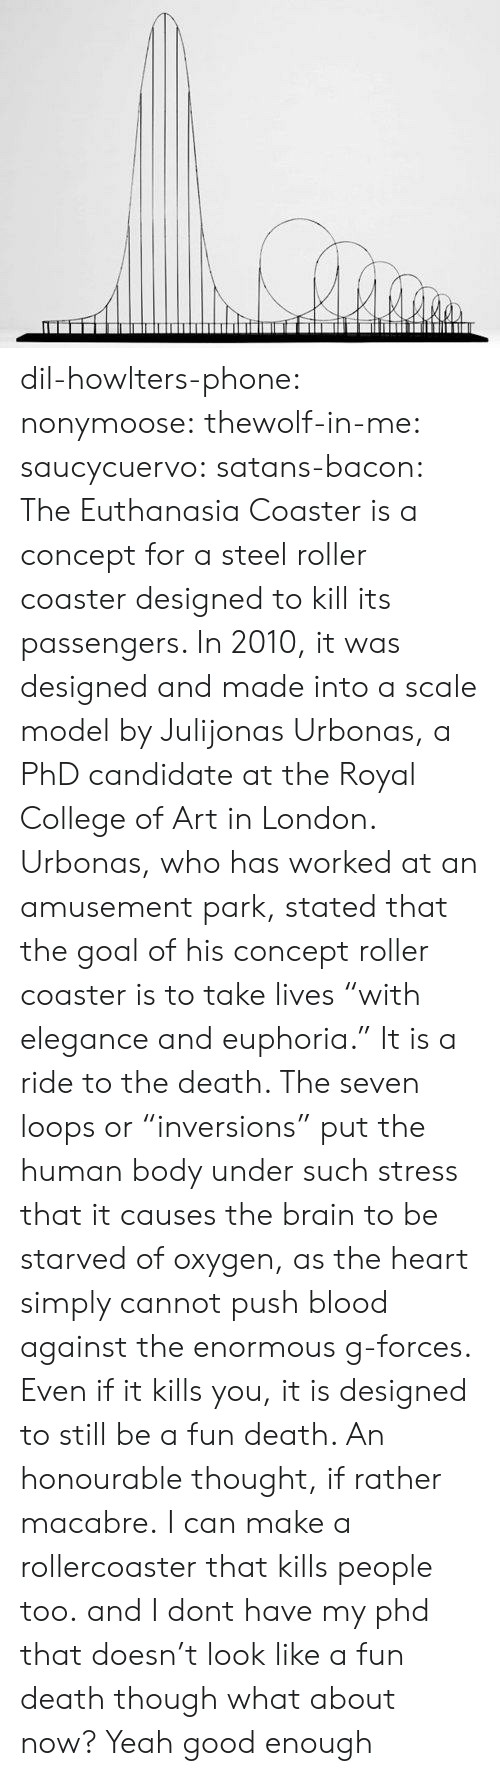 """Dil: dil-howlters-phone:  nonymoose:  thewolf-in-me:  saucycuervo:  satans-bacon: The Euthanasia Coaster is a concept for a steel roller coaster designed to kill its passengers. In 2010, it was designed and made into a scale model by Julijonas Urbonas, a PhD candidate at the Royal College of Art in London. Urbonas, who has worked at an amusement park, stated that the goal of his concept roller coaster is to take lives """"with elegance and euphoria."""" It is a ride to the death. The seven loops or """"inversions"""" put the human body under such stress that it causes the brain to be starved of oxygen, as the heart simply cannot push blood against the enormous g-forces. Even if it kills you, it is designed to still be a fun death. An honourable thought, if rather macabre. I can make a rollercoaster that kills people too. and I dont have my phd   that doesn't look like a fun death though   what about now?   Yeah good enough"""